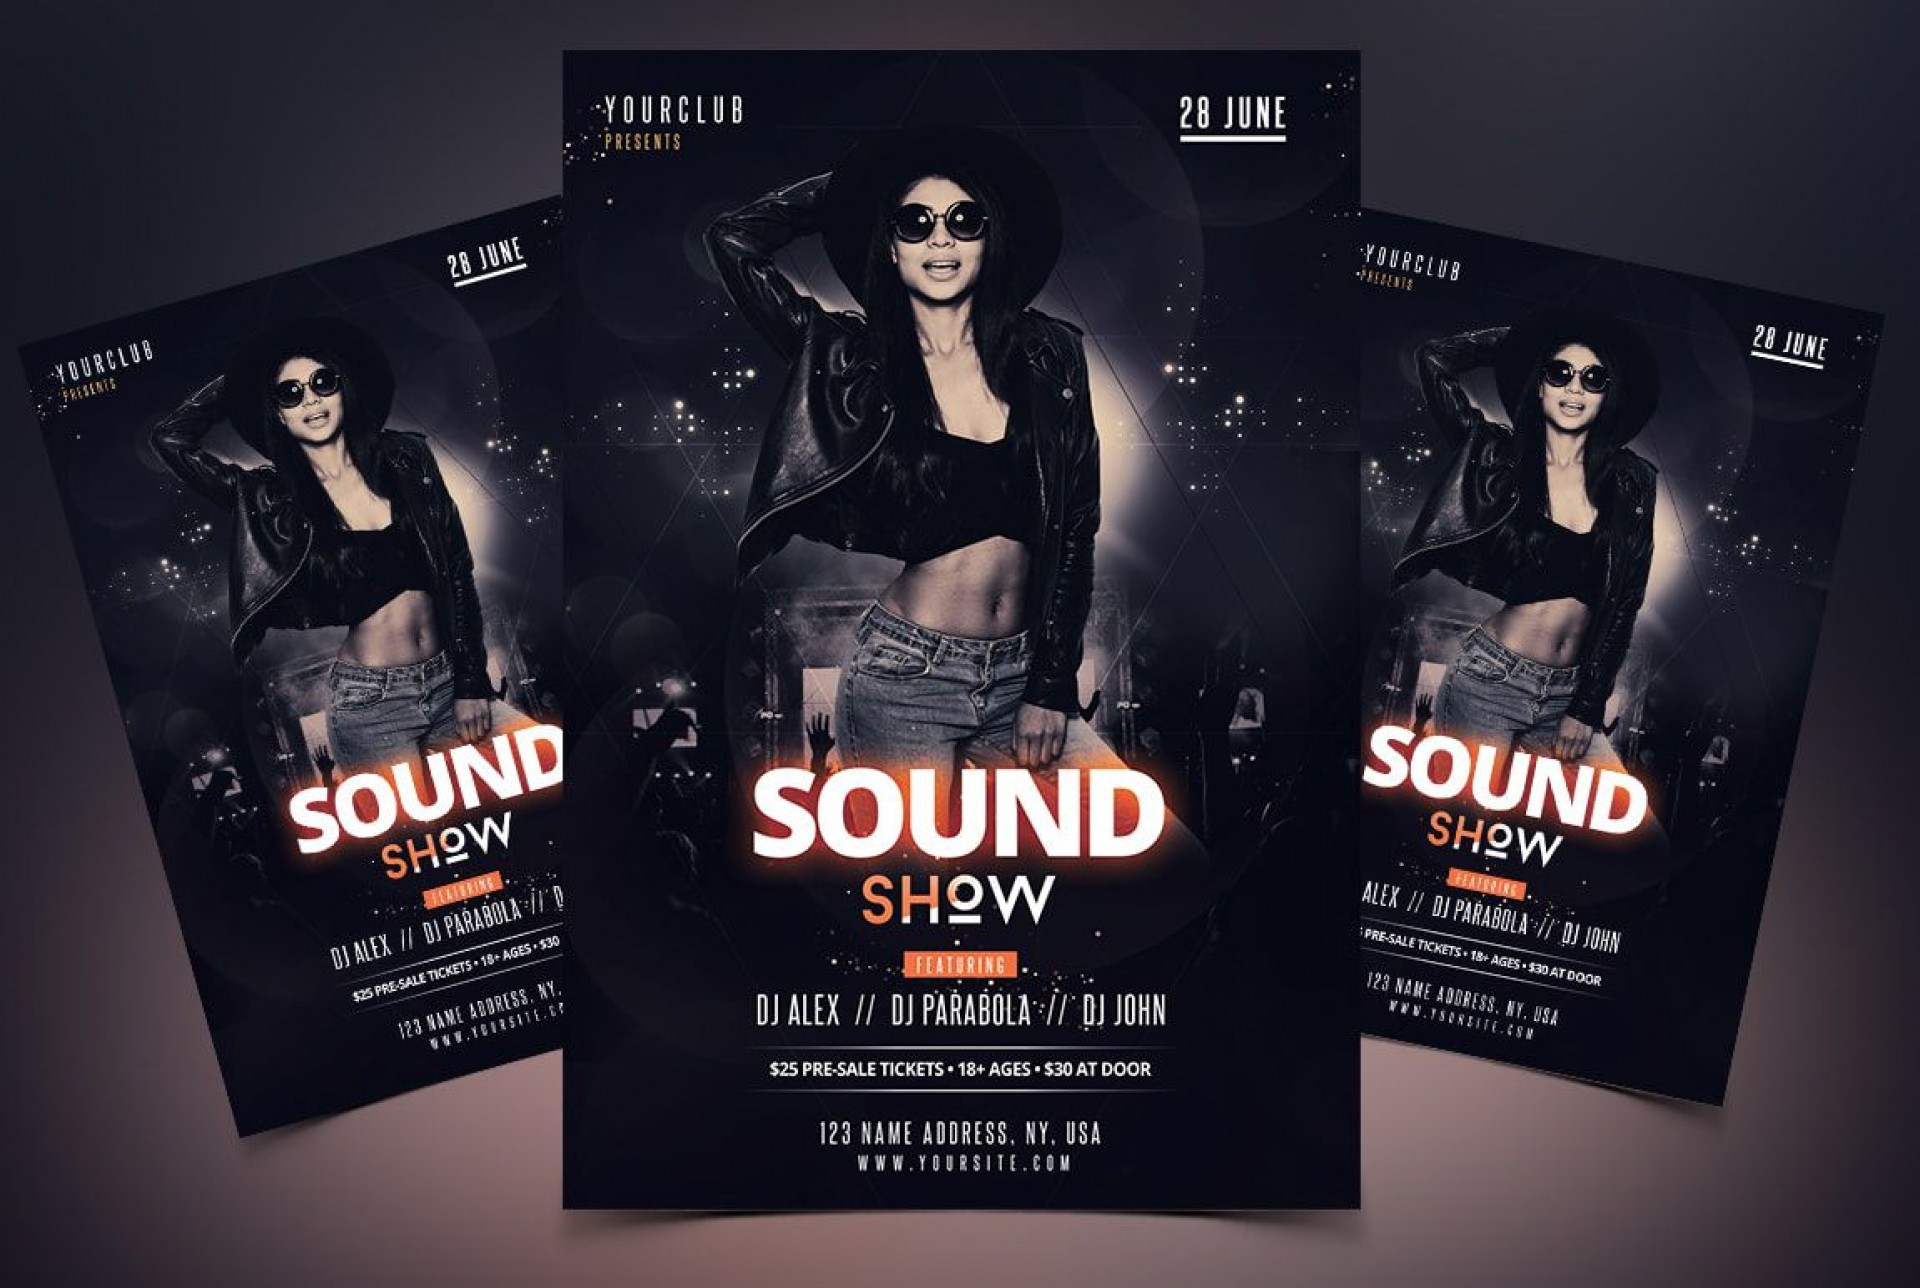 009 Awful Free Party Flyer Psd Template Download Inspiration  - Neon Glow1920